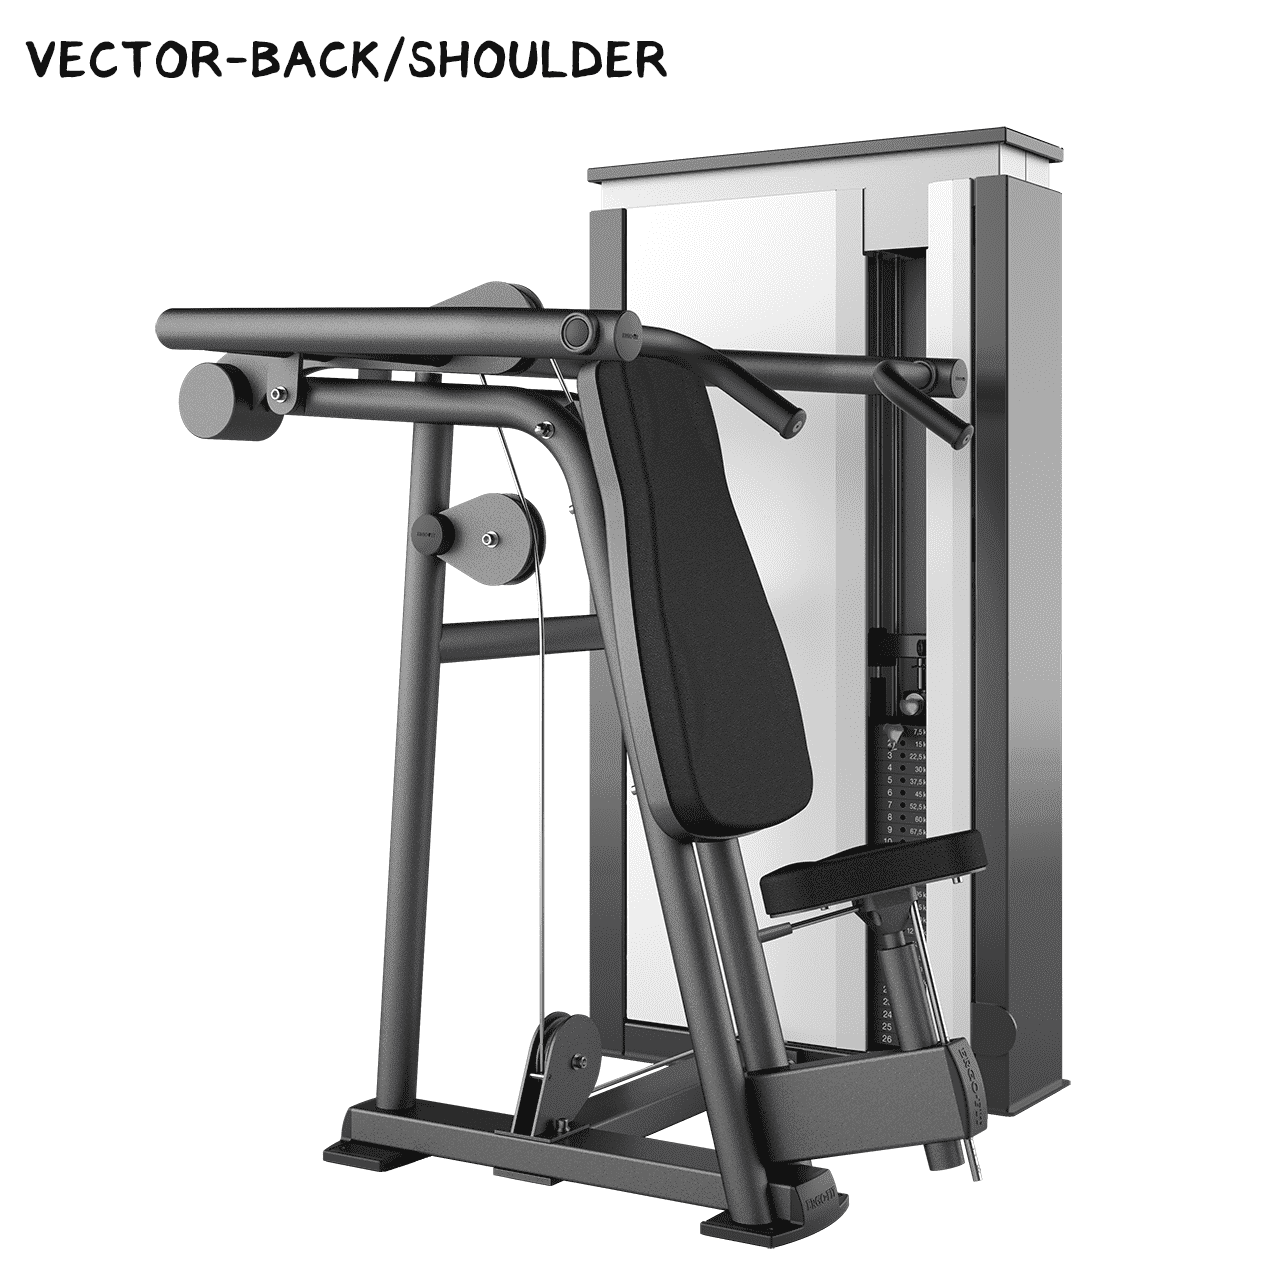 ERGOFIT-Shoulder Press 坐姿肩推機